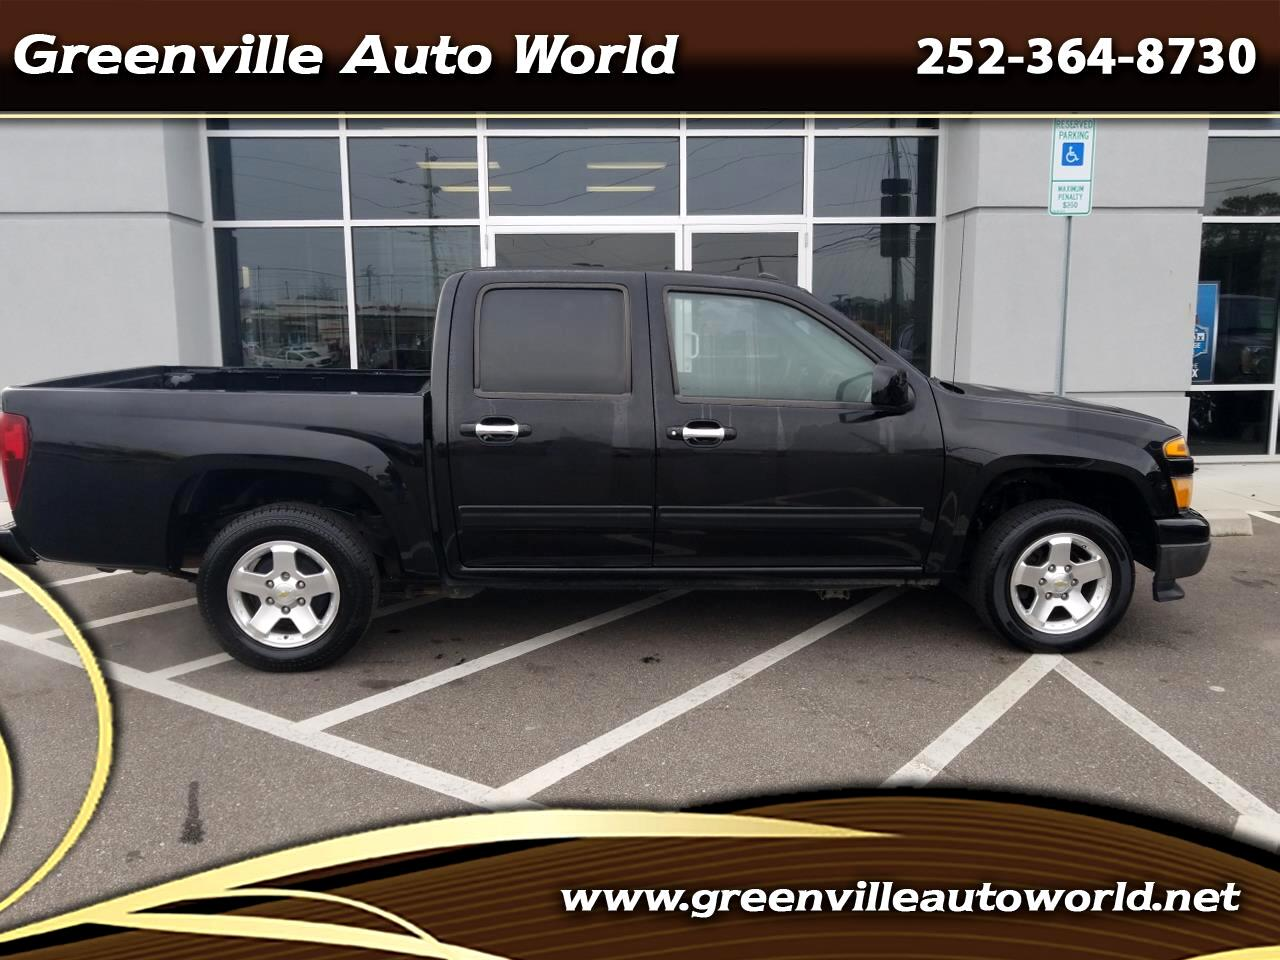 2012 Chevrolet Colorado 1LT Crew Cab 2WD